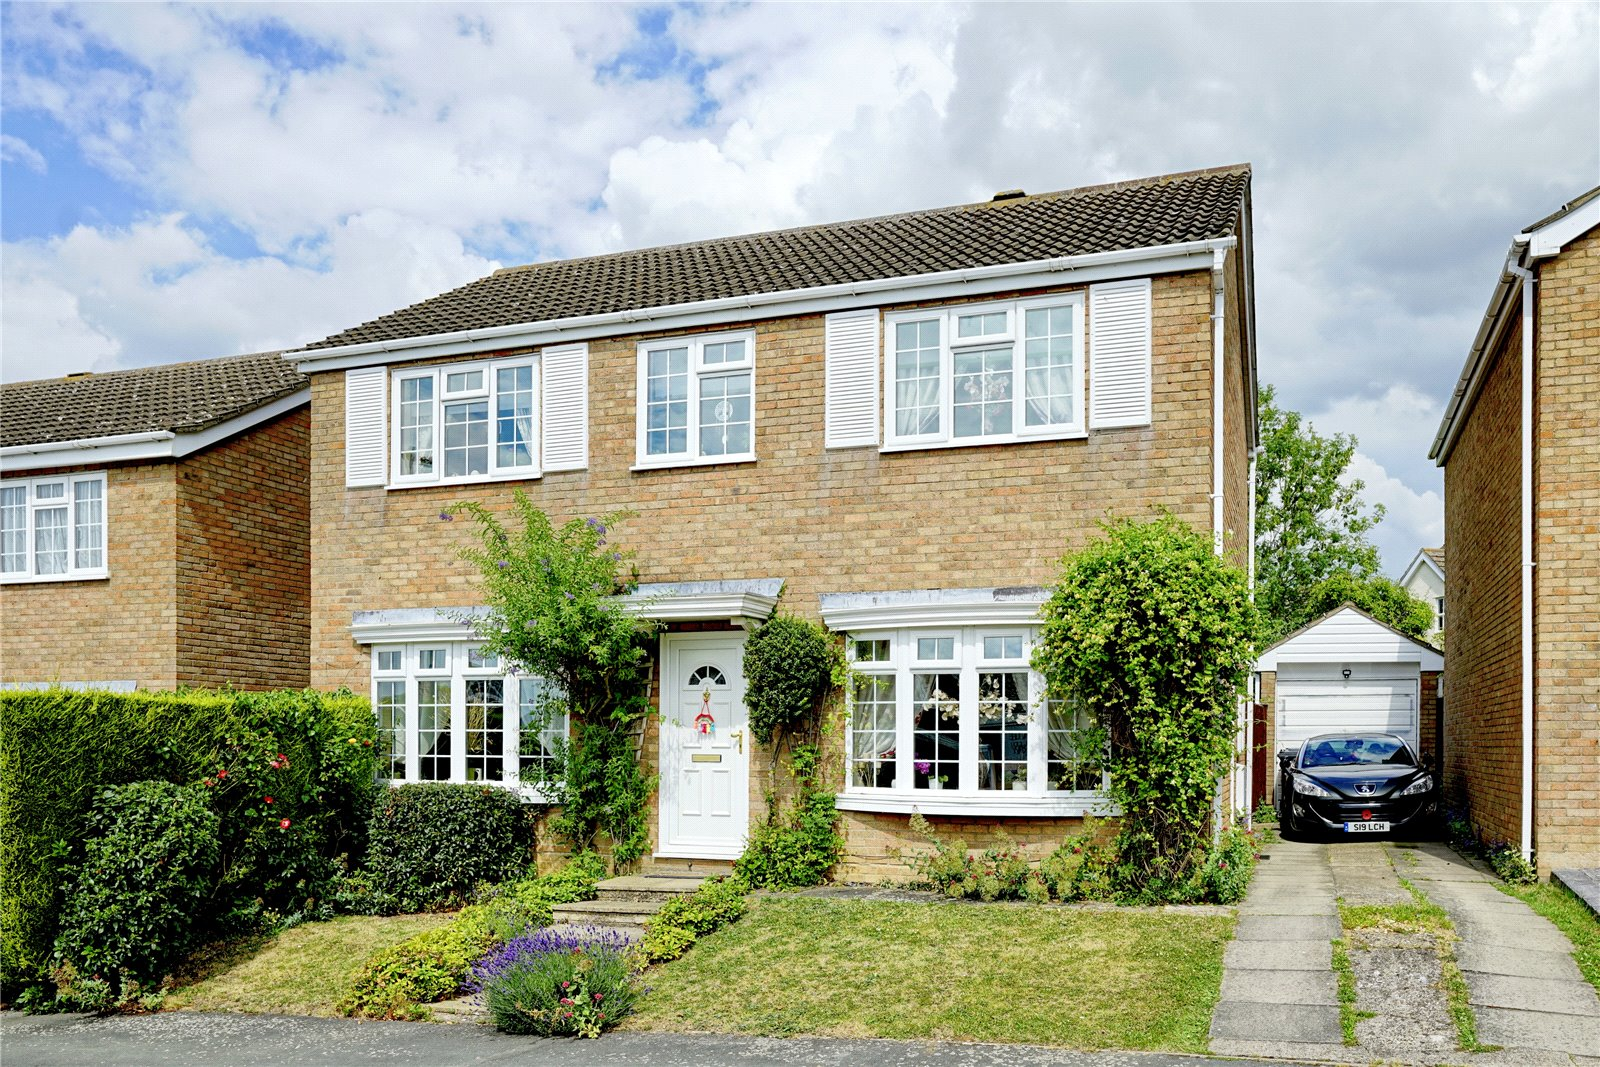 4 bed house for sale in Meadow Way, Great Paxton, PE19